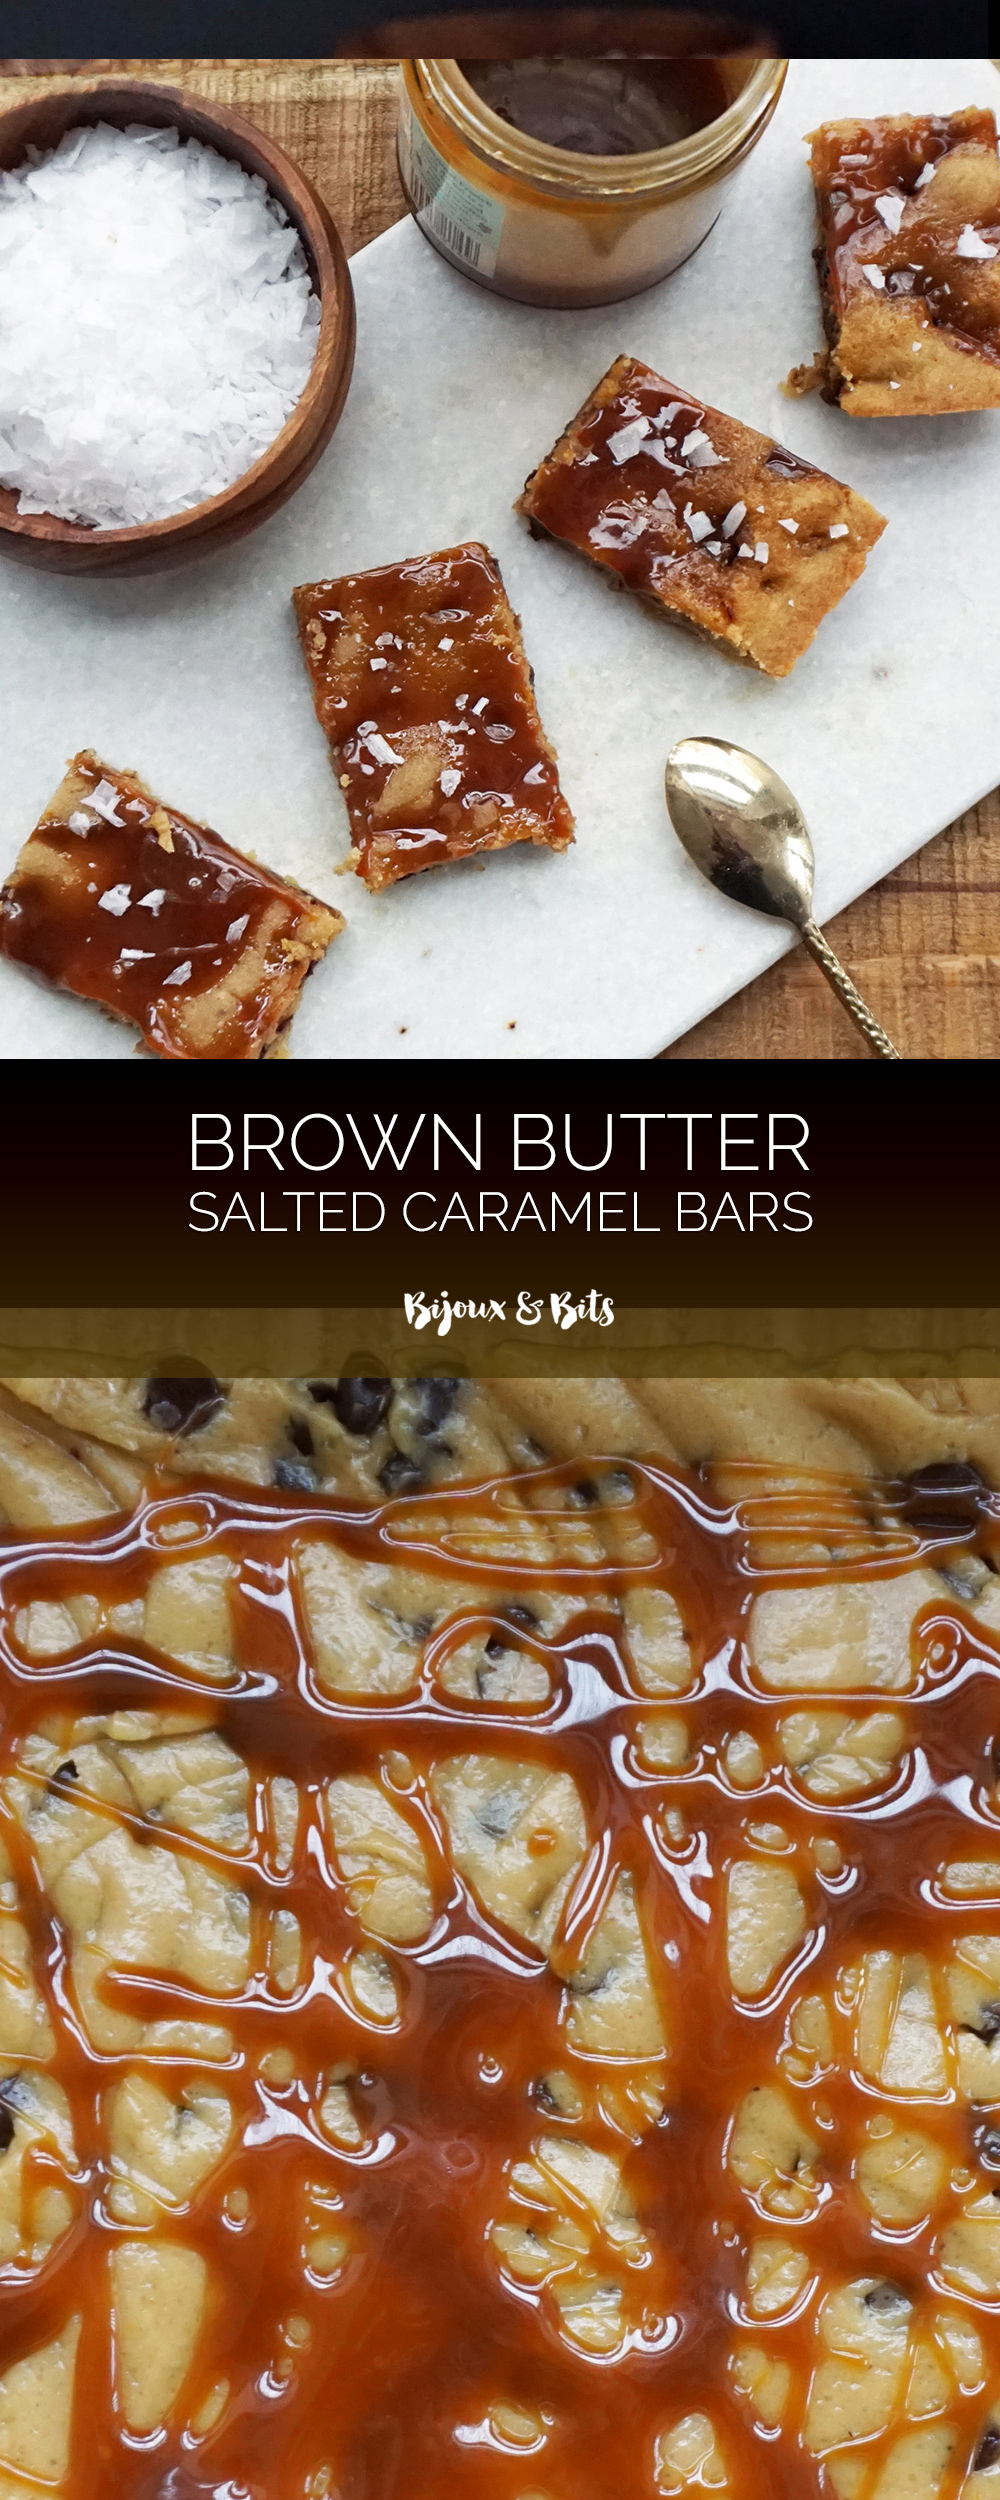 Brown butter salted caramel bars from @bijouxandbits